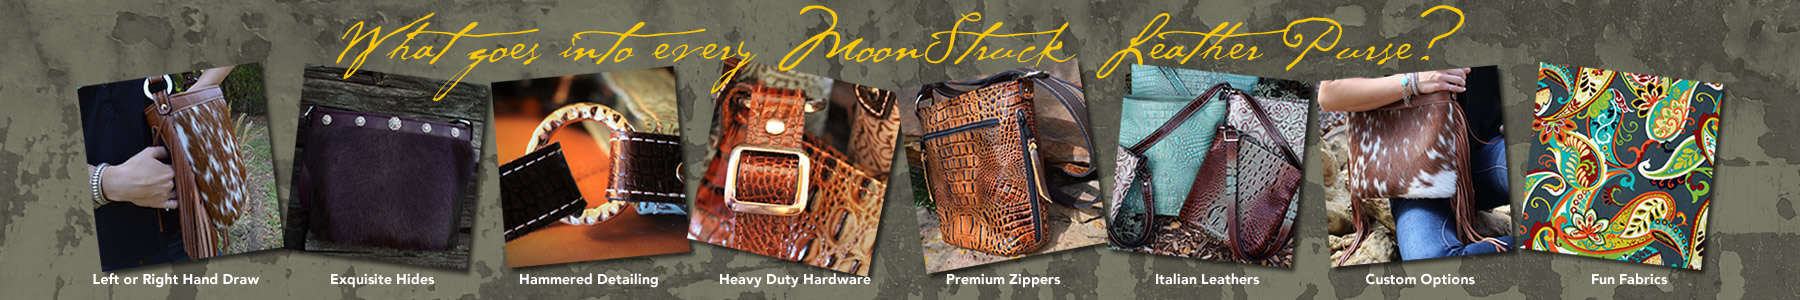 Only the finest materials and workmanship go into Moonstruck Leather's Crossbody Concealed Carry Purses.